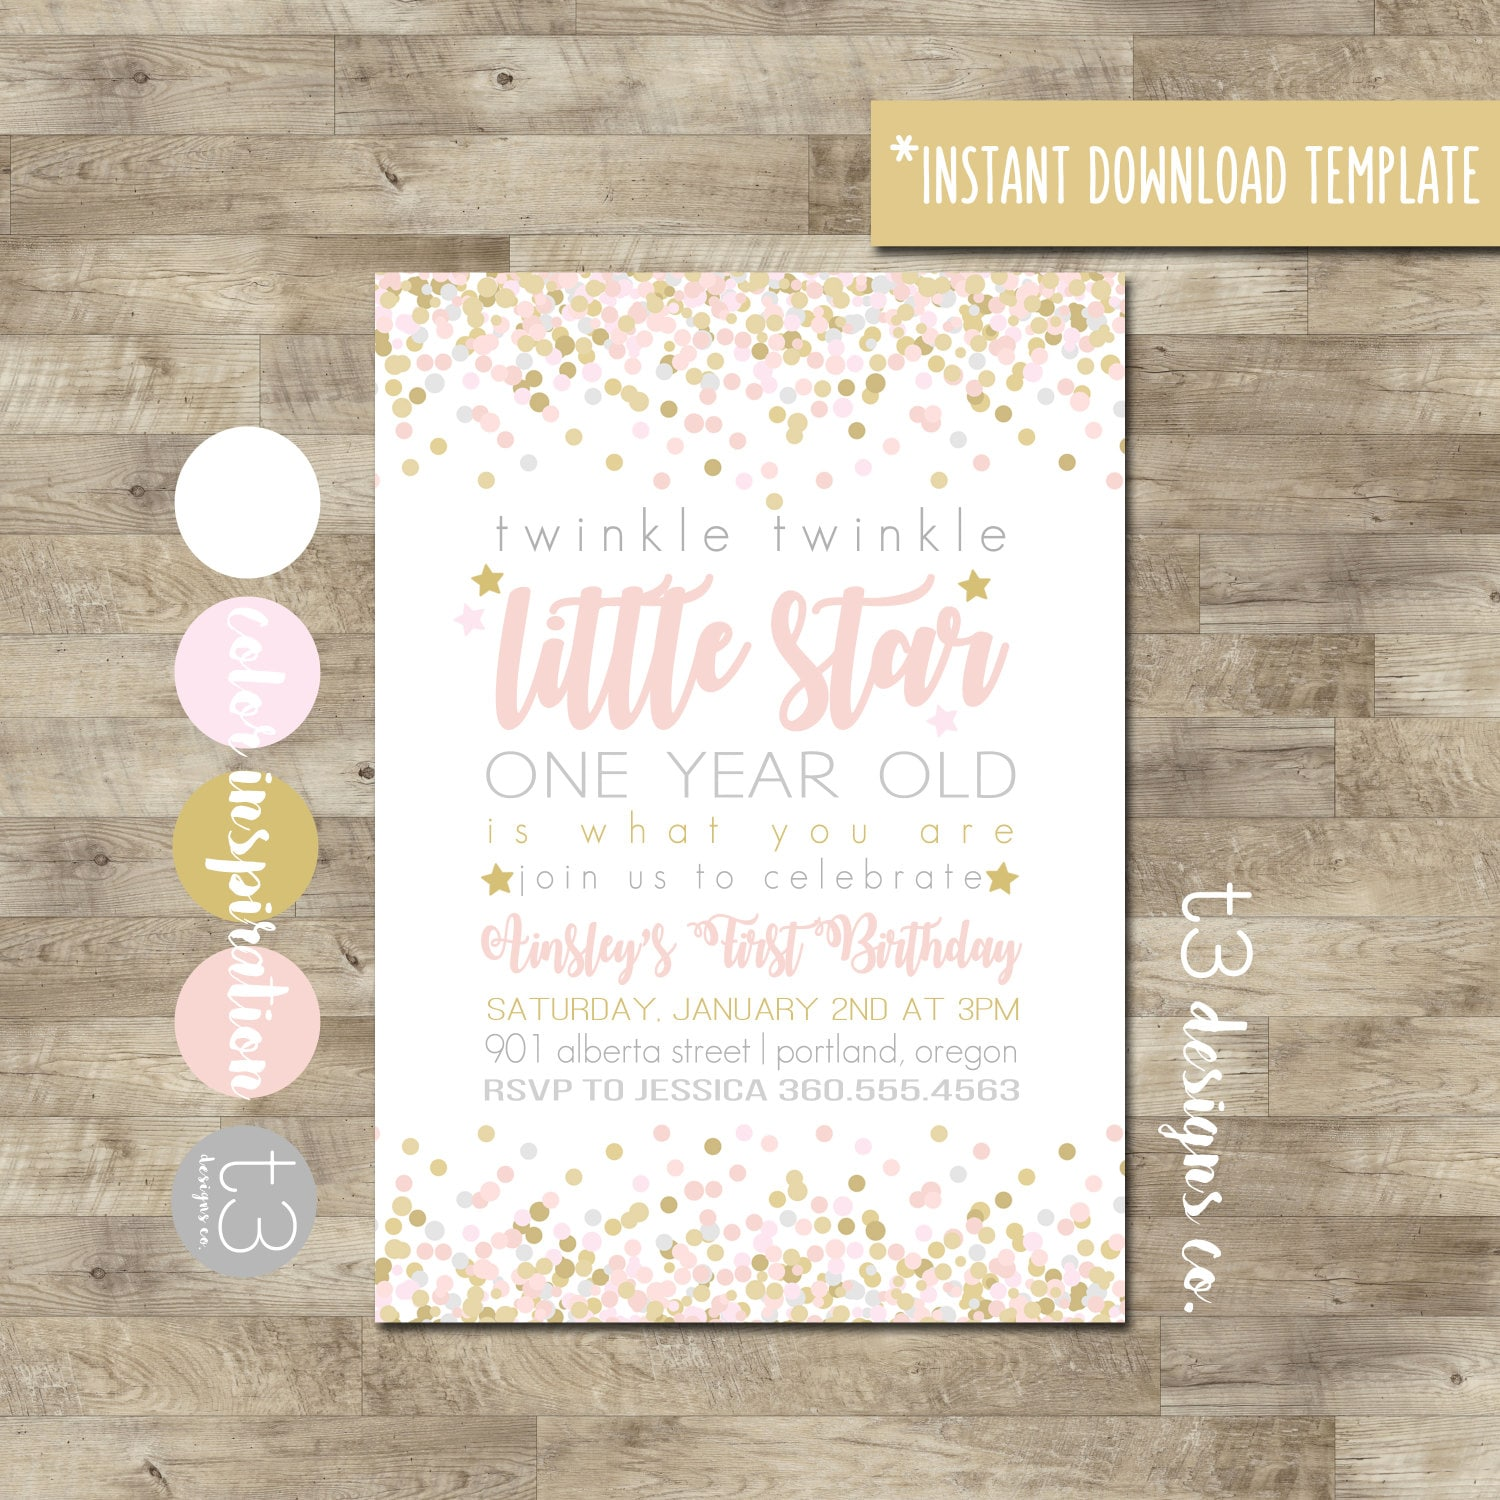 Instant Download Twinkle Twinkle Little Star First Birthday | Etsy